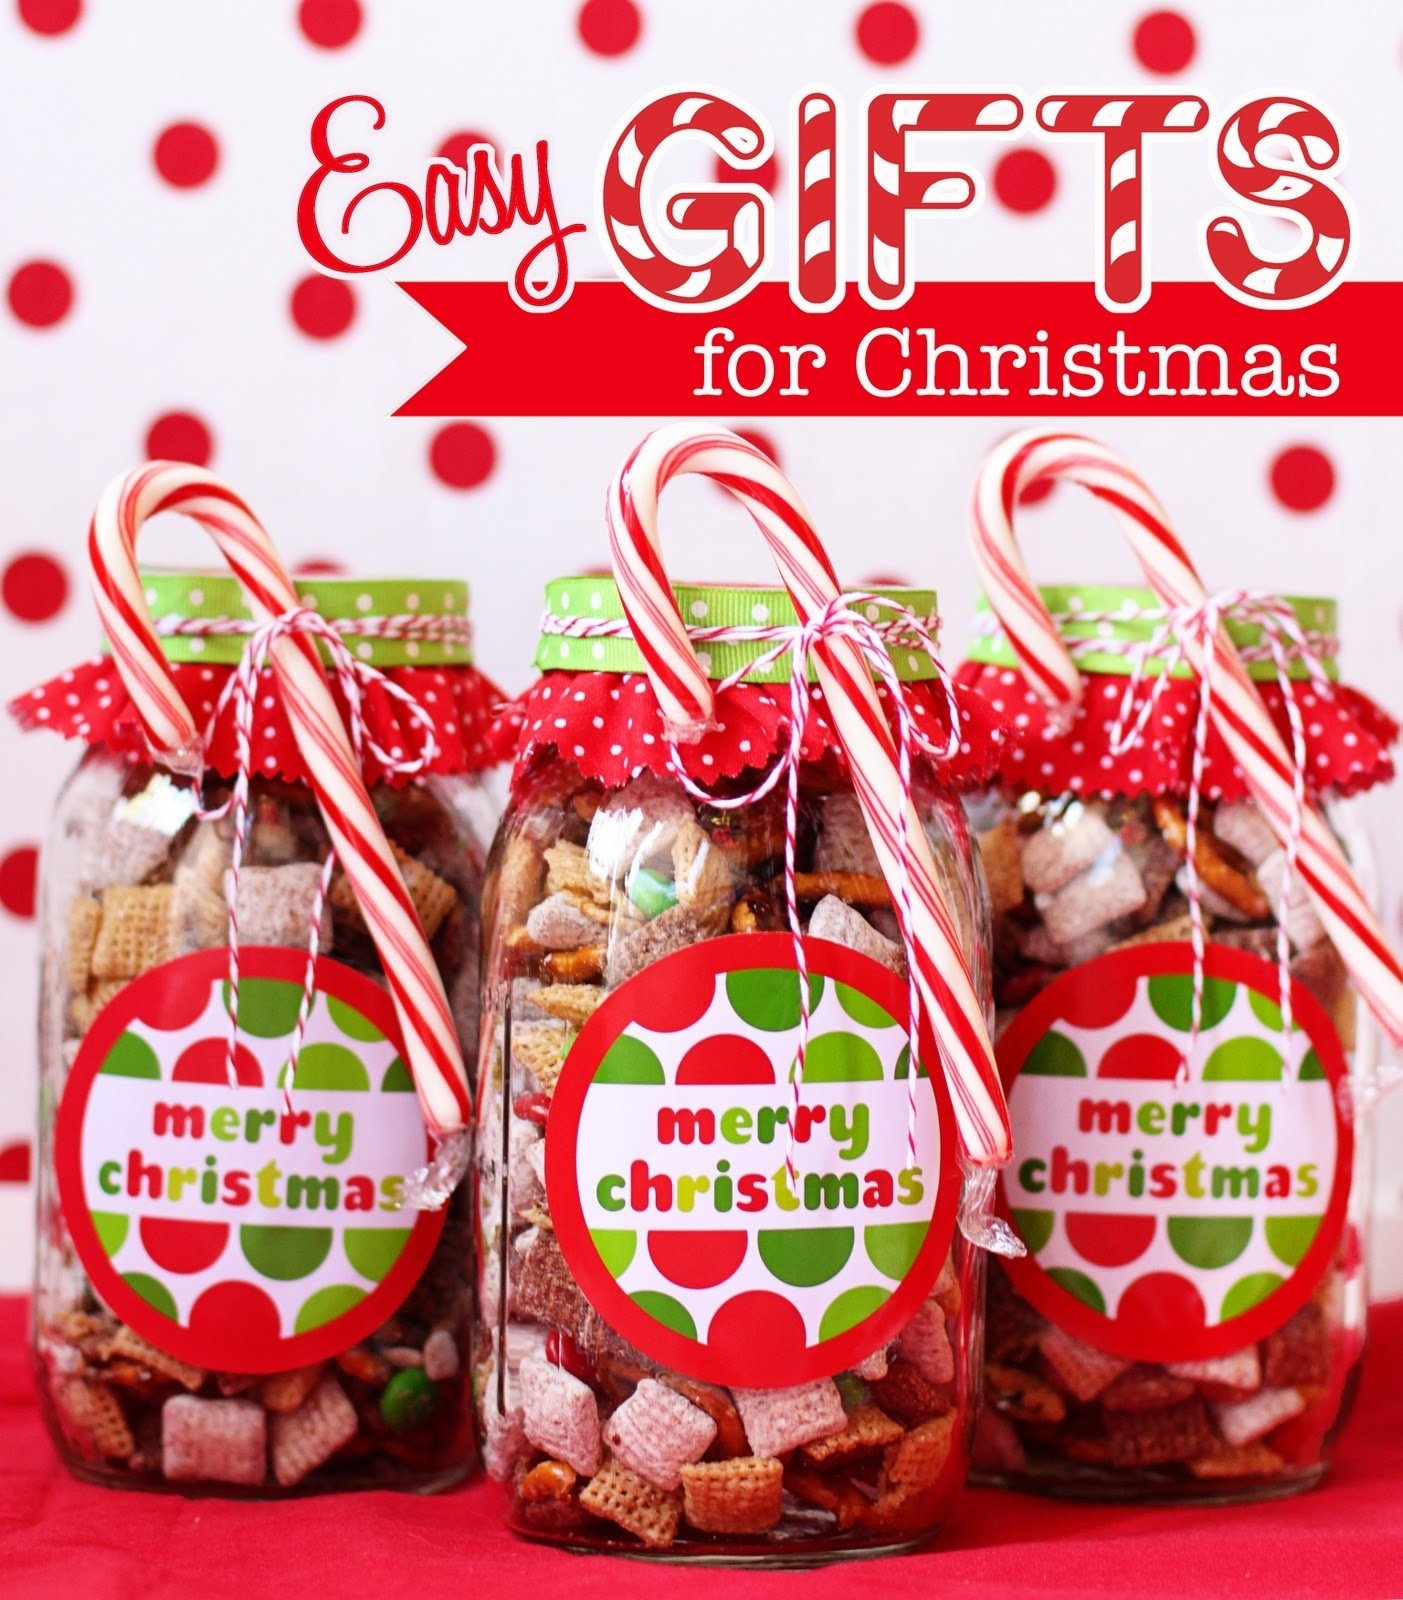 10 Best Home Made Christmas Gift Ideas 25 edible neighbor gifts the 36th avenue 2020